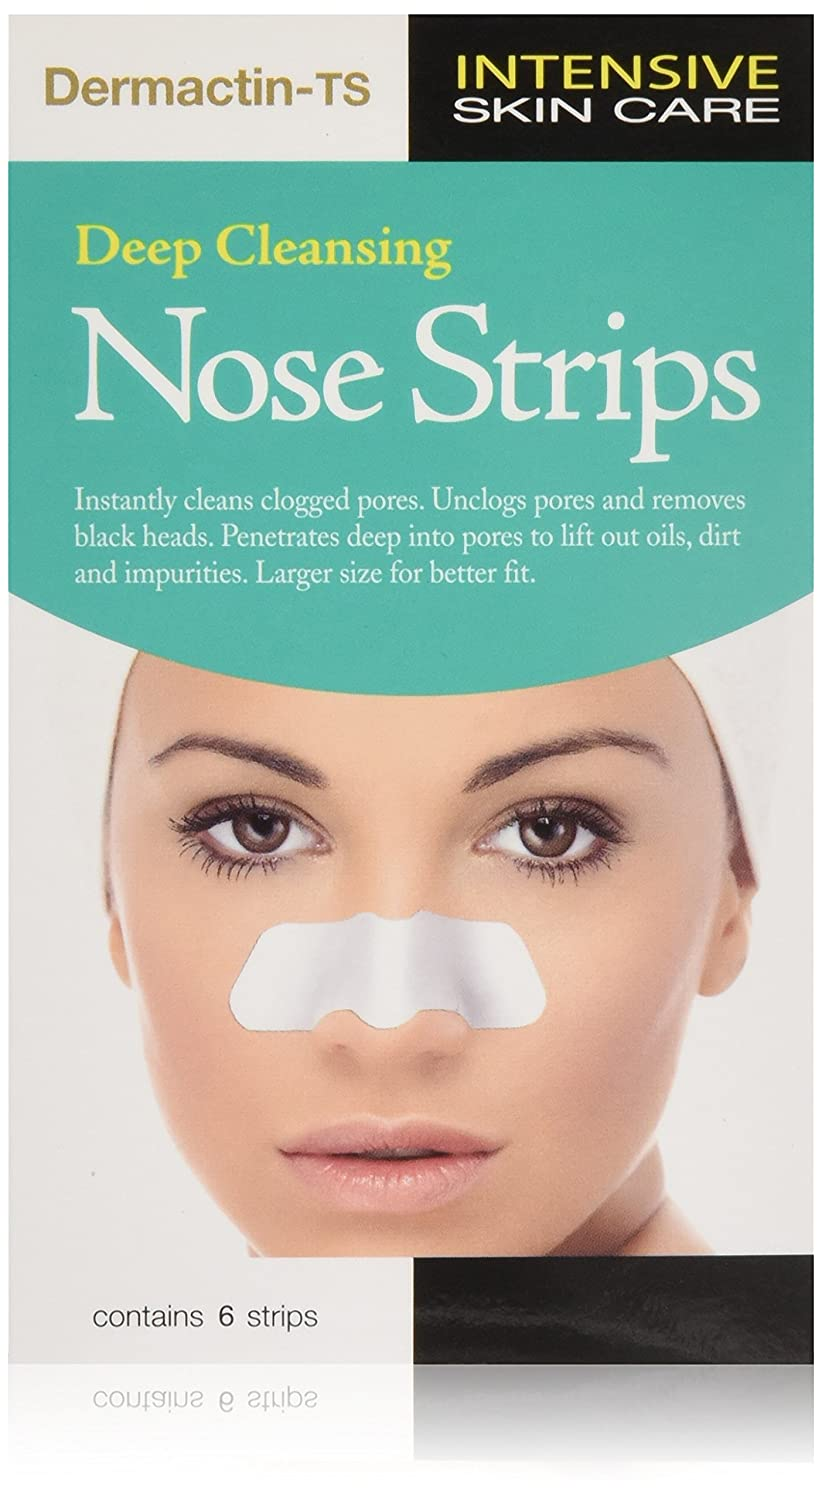 Dermactin-TS Deep Cleansing Nose Strips 1 Count